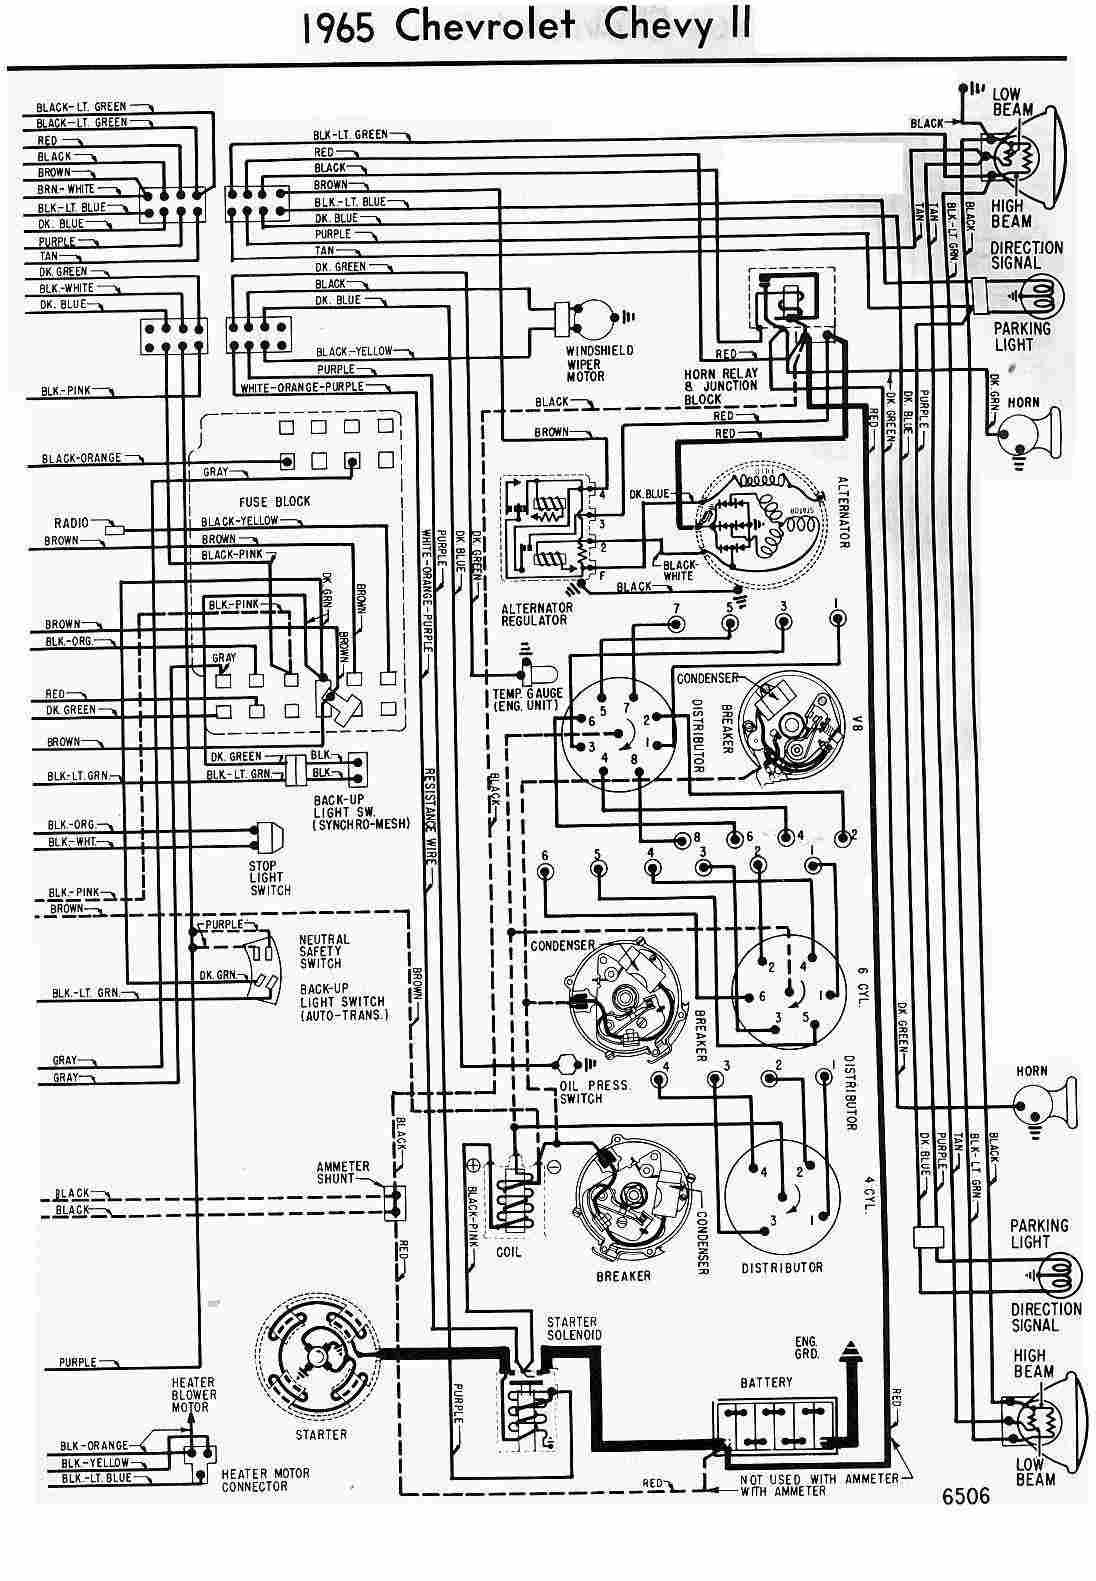 1971 chevy nova wiring diagram on 1975 chevy truck wiring diagram75 nova wiring basic electronics wiring [ 1096 x 1581 Pixel ]